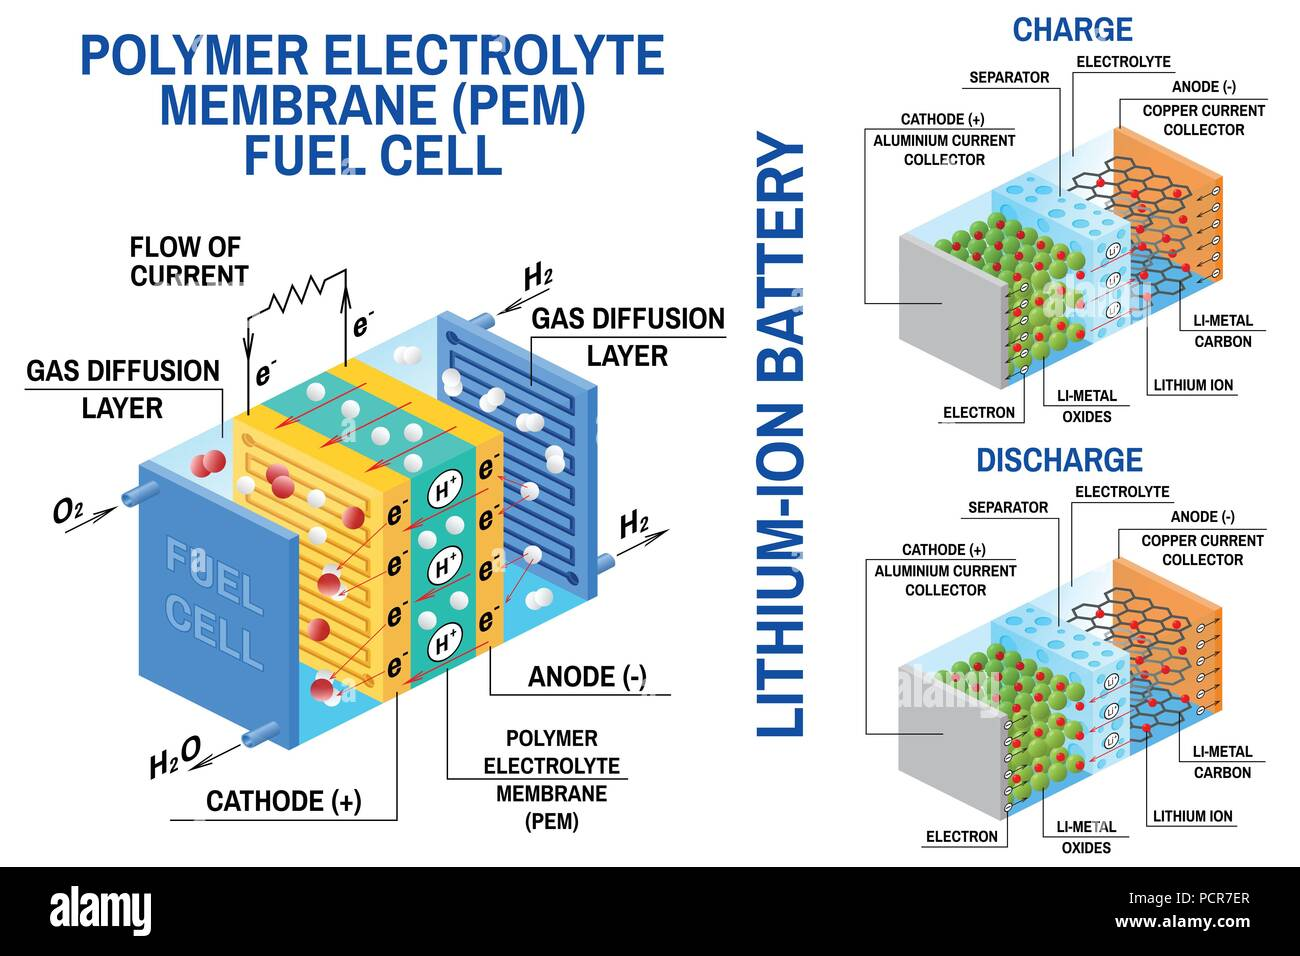 hight resolution of fuel cell and li ion battery diagram vector device that converts chemical potential energy into electrical energy fuel cell uses hydrogen gas and oxygen